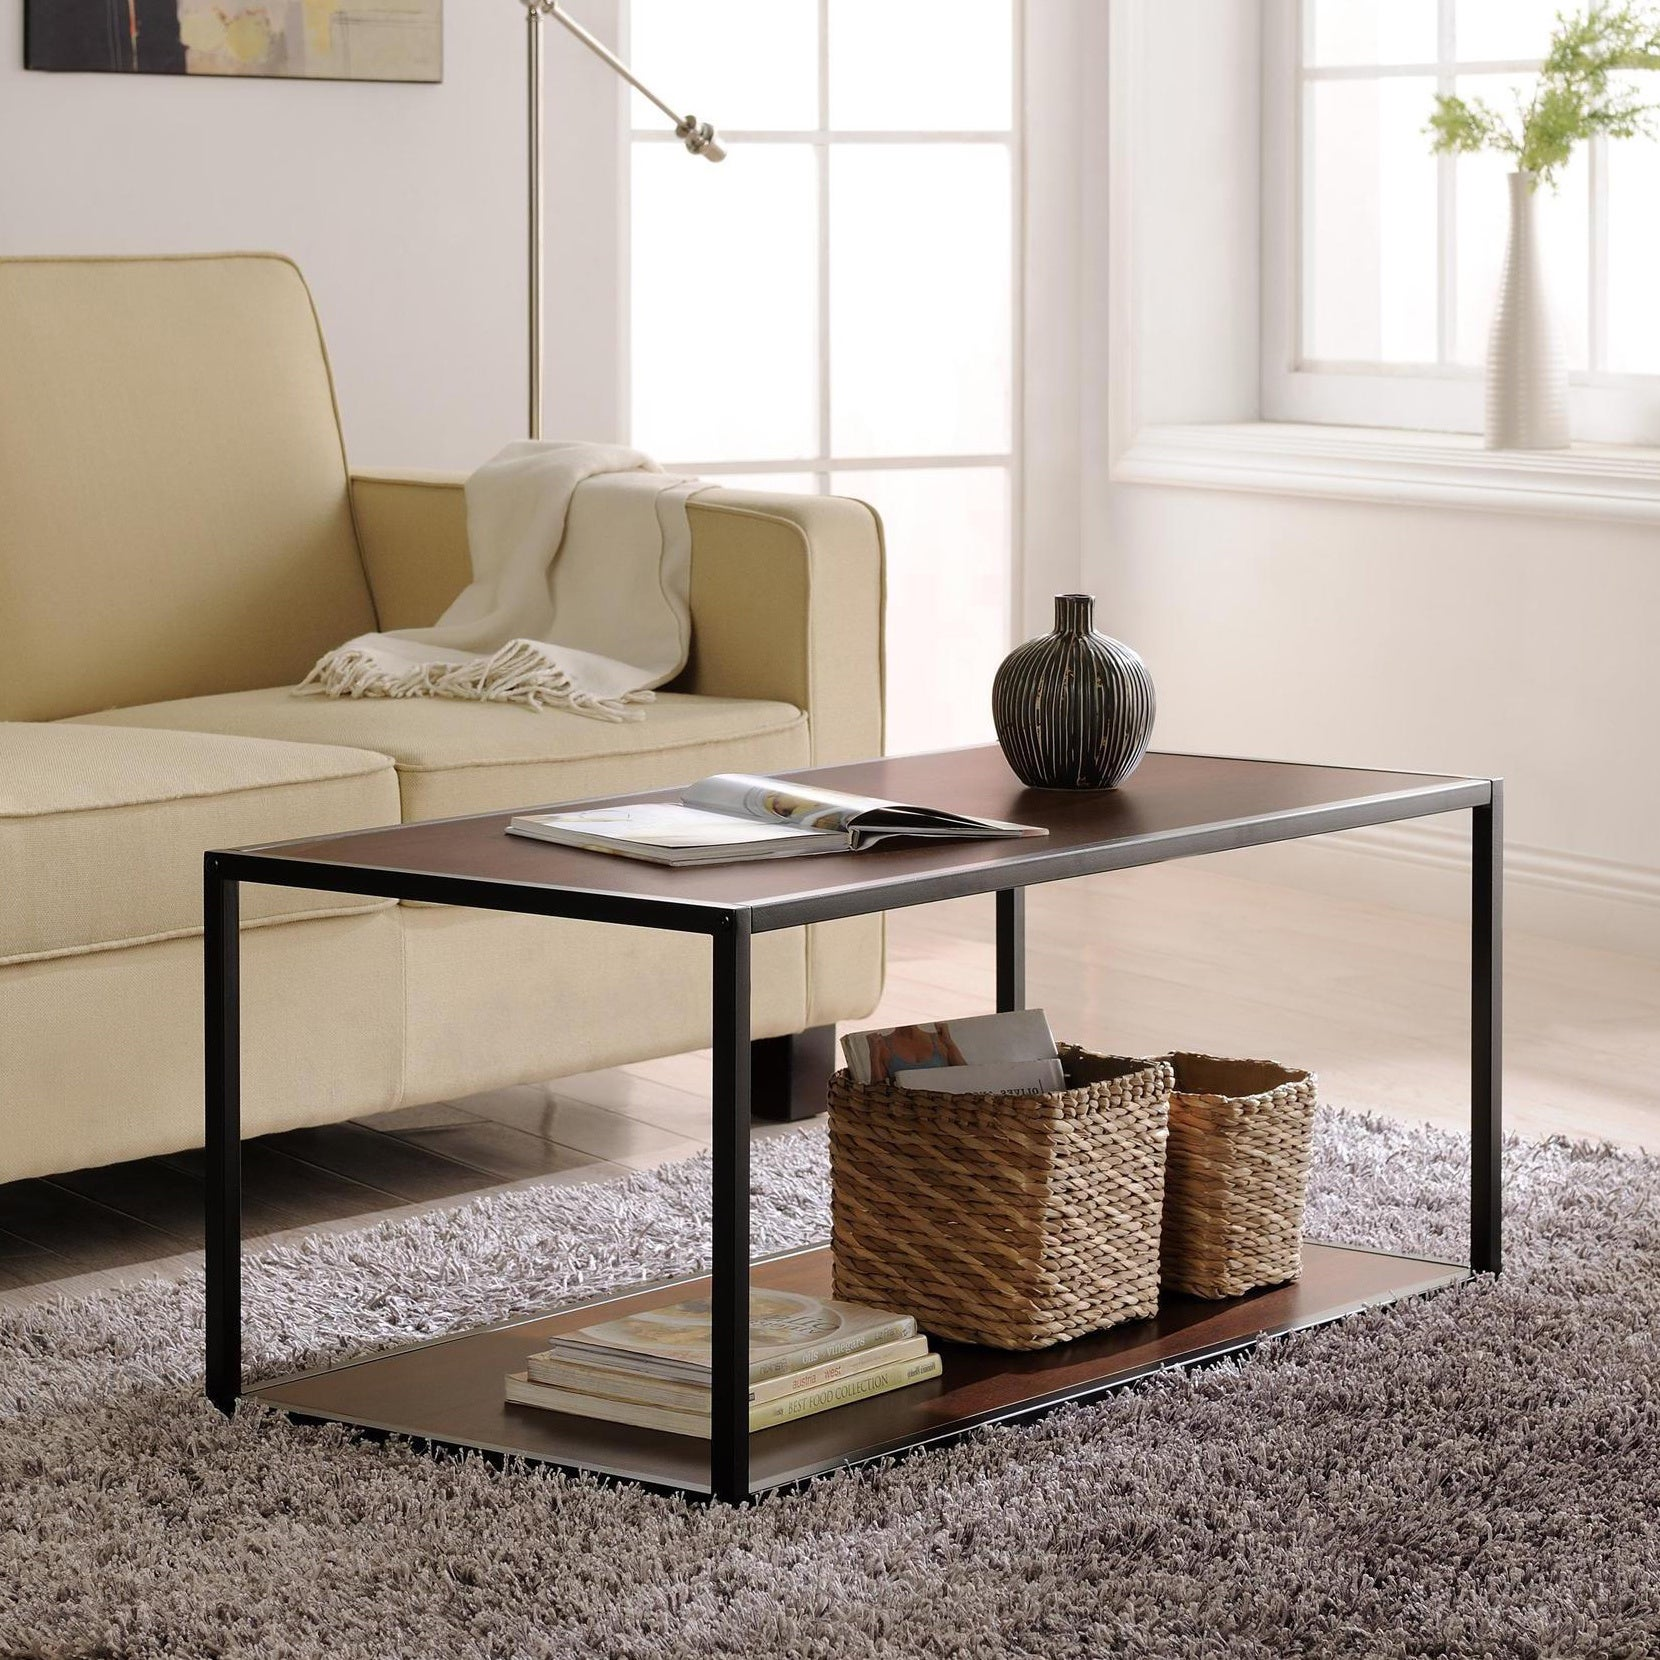 Wicker Park Haddon Metal Frame Coffee Table Free Shipping